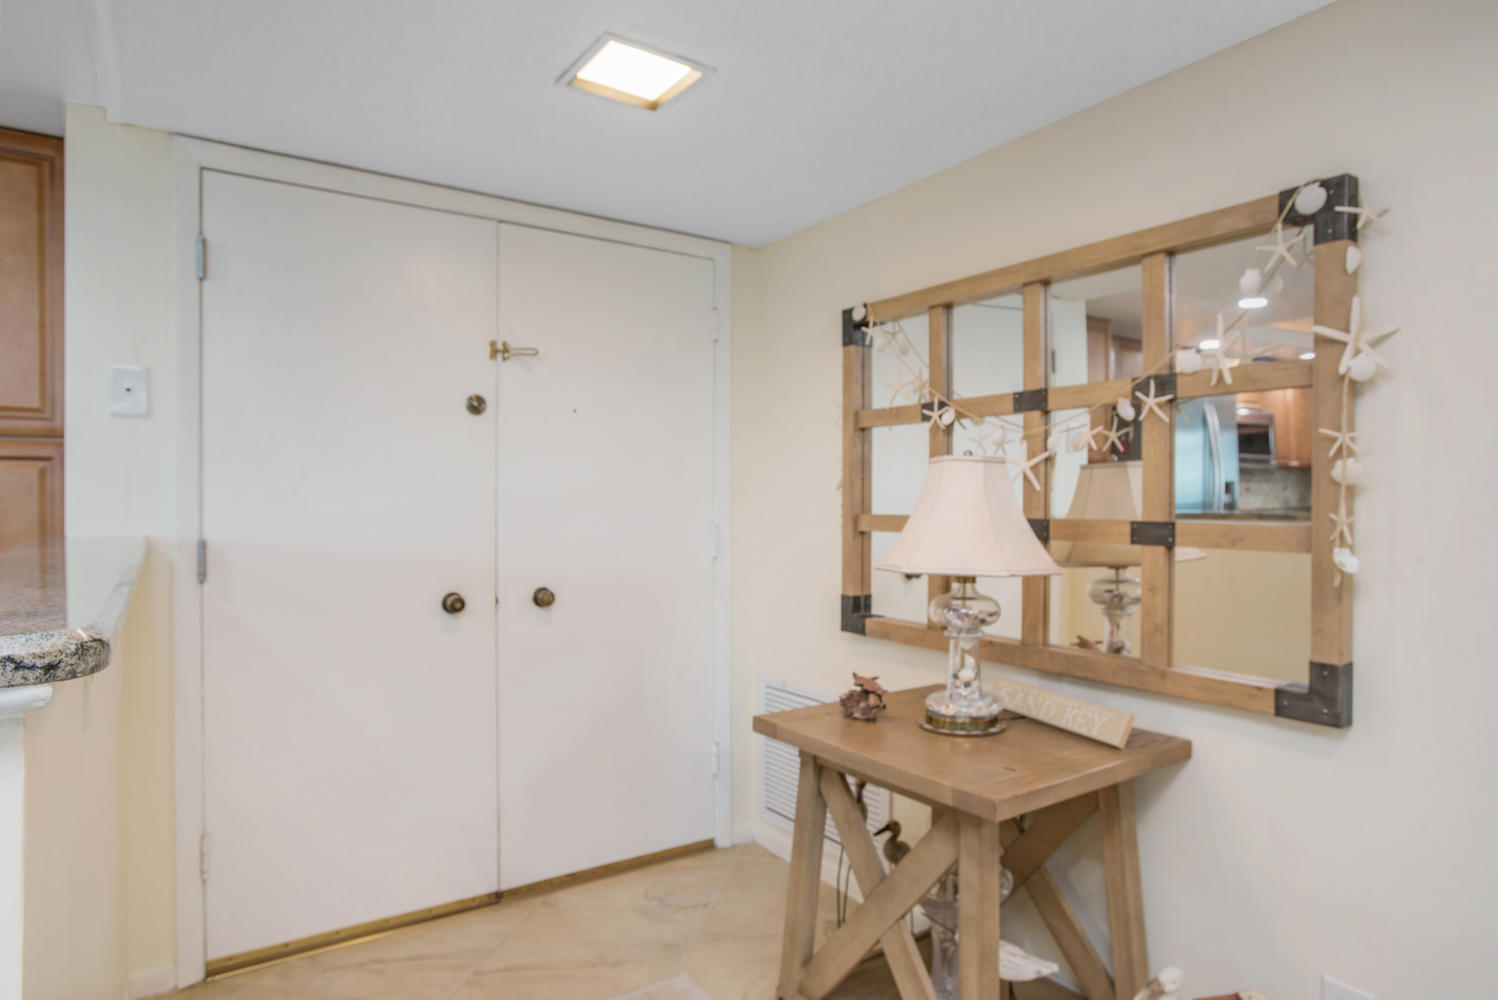 1400 gulf blvd 108 Clearwater-large-003-